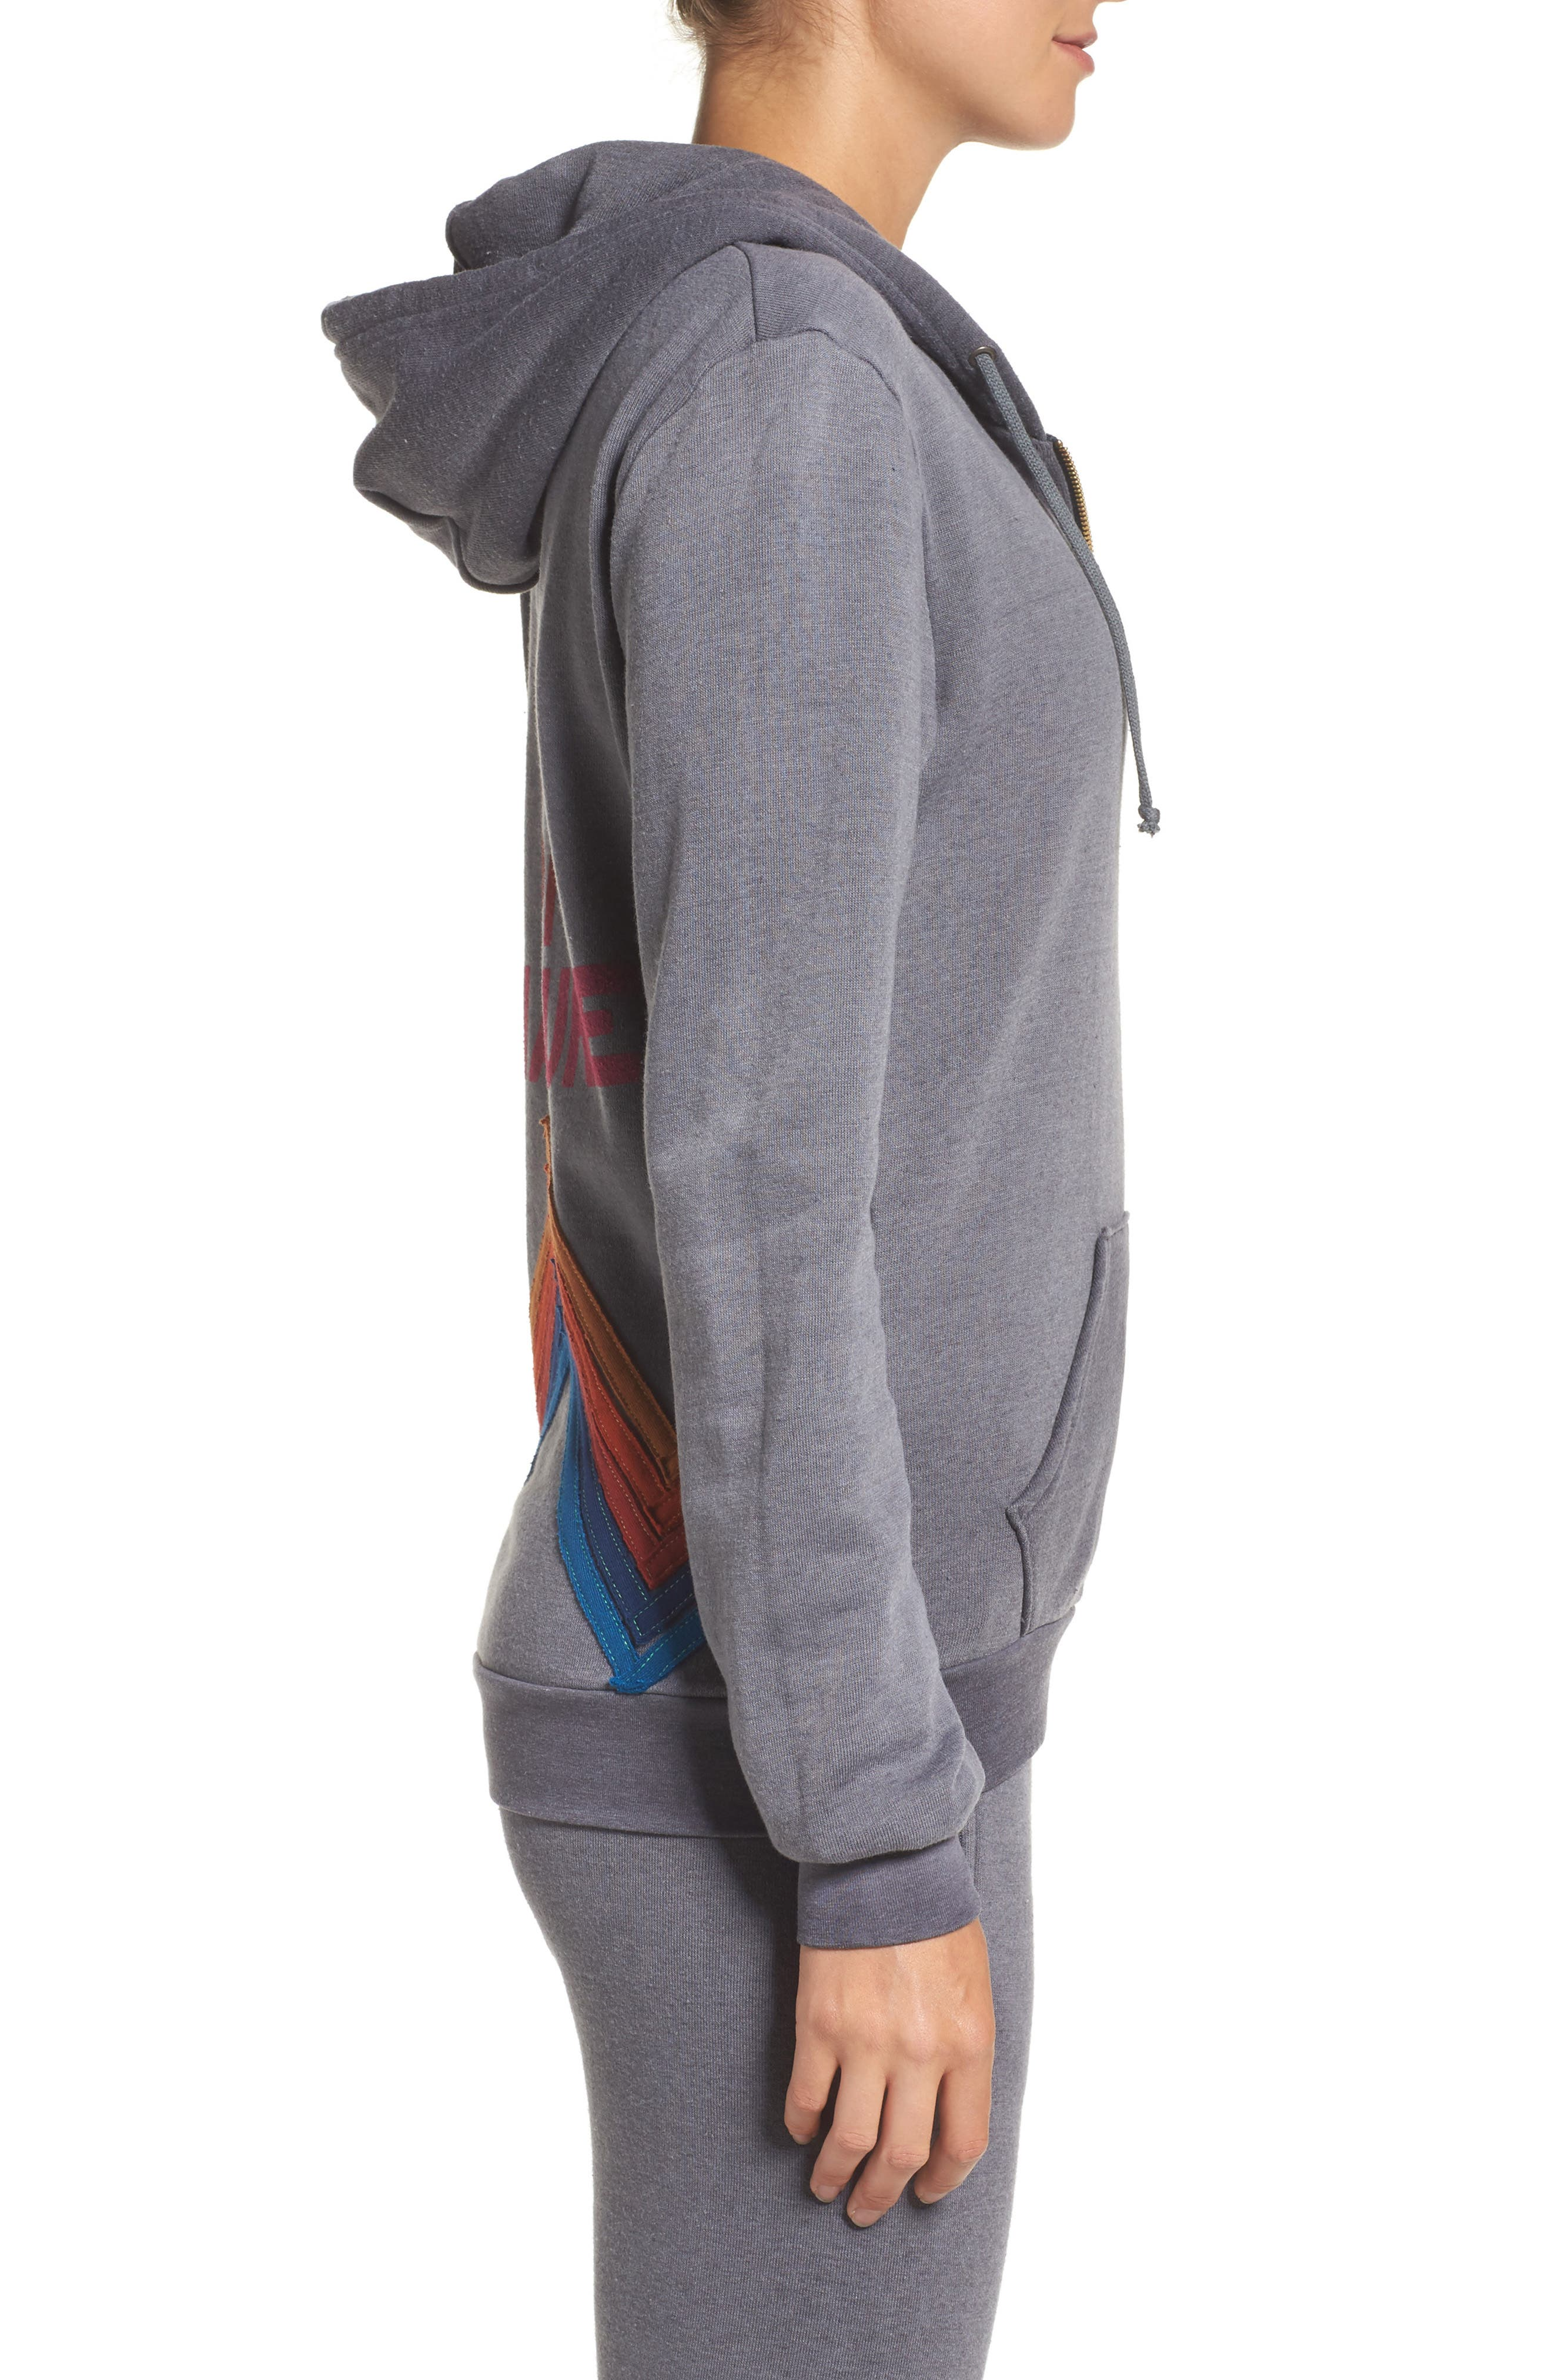 High on Nature Hoodie,                             Alternate thumbnail 3, color,                             020